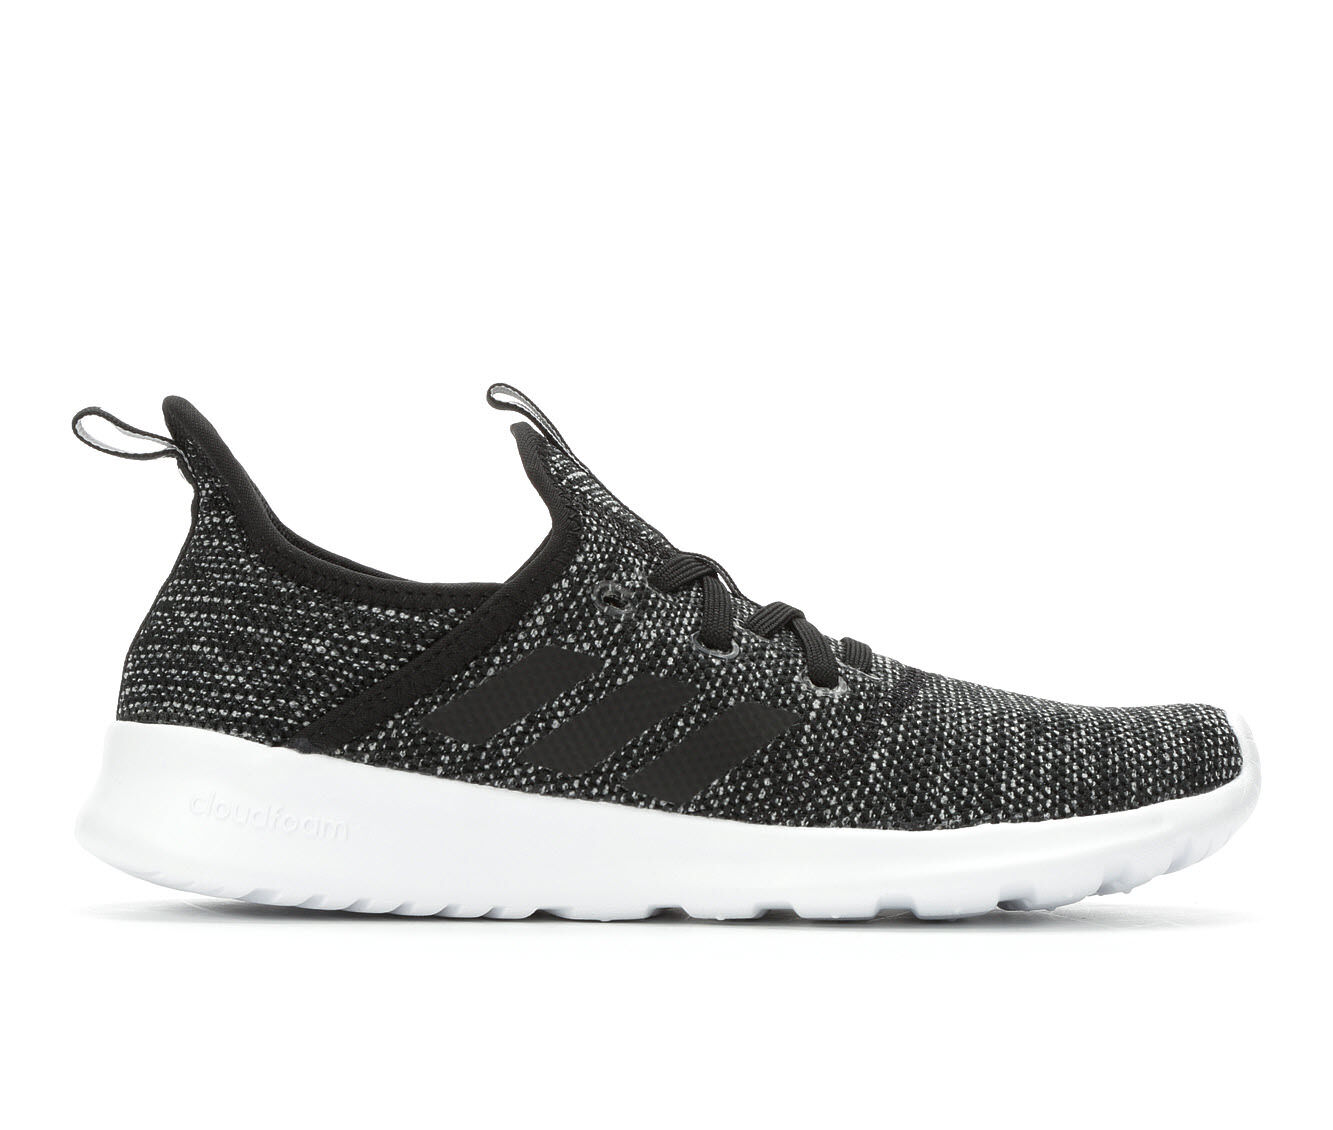 Women's Adidas Pure Sneakers Black/Grey/Wht